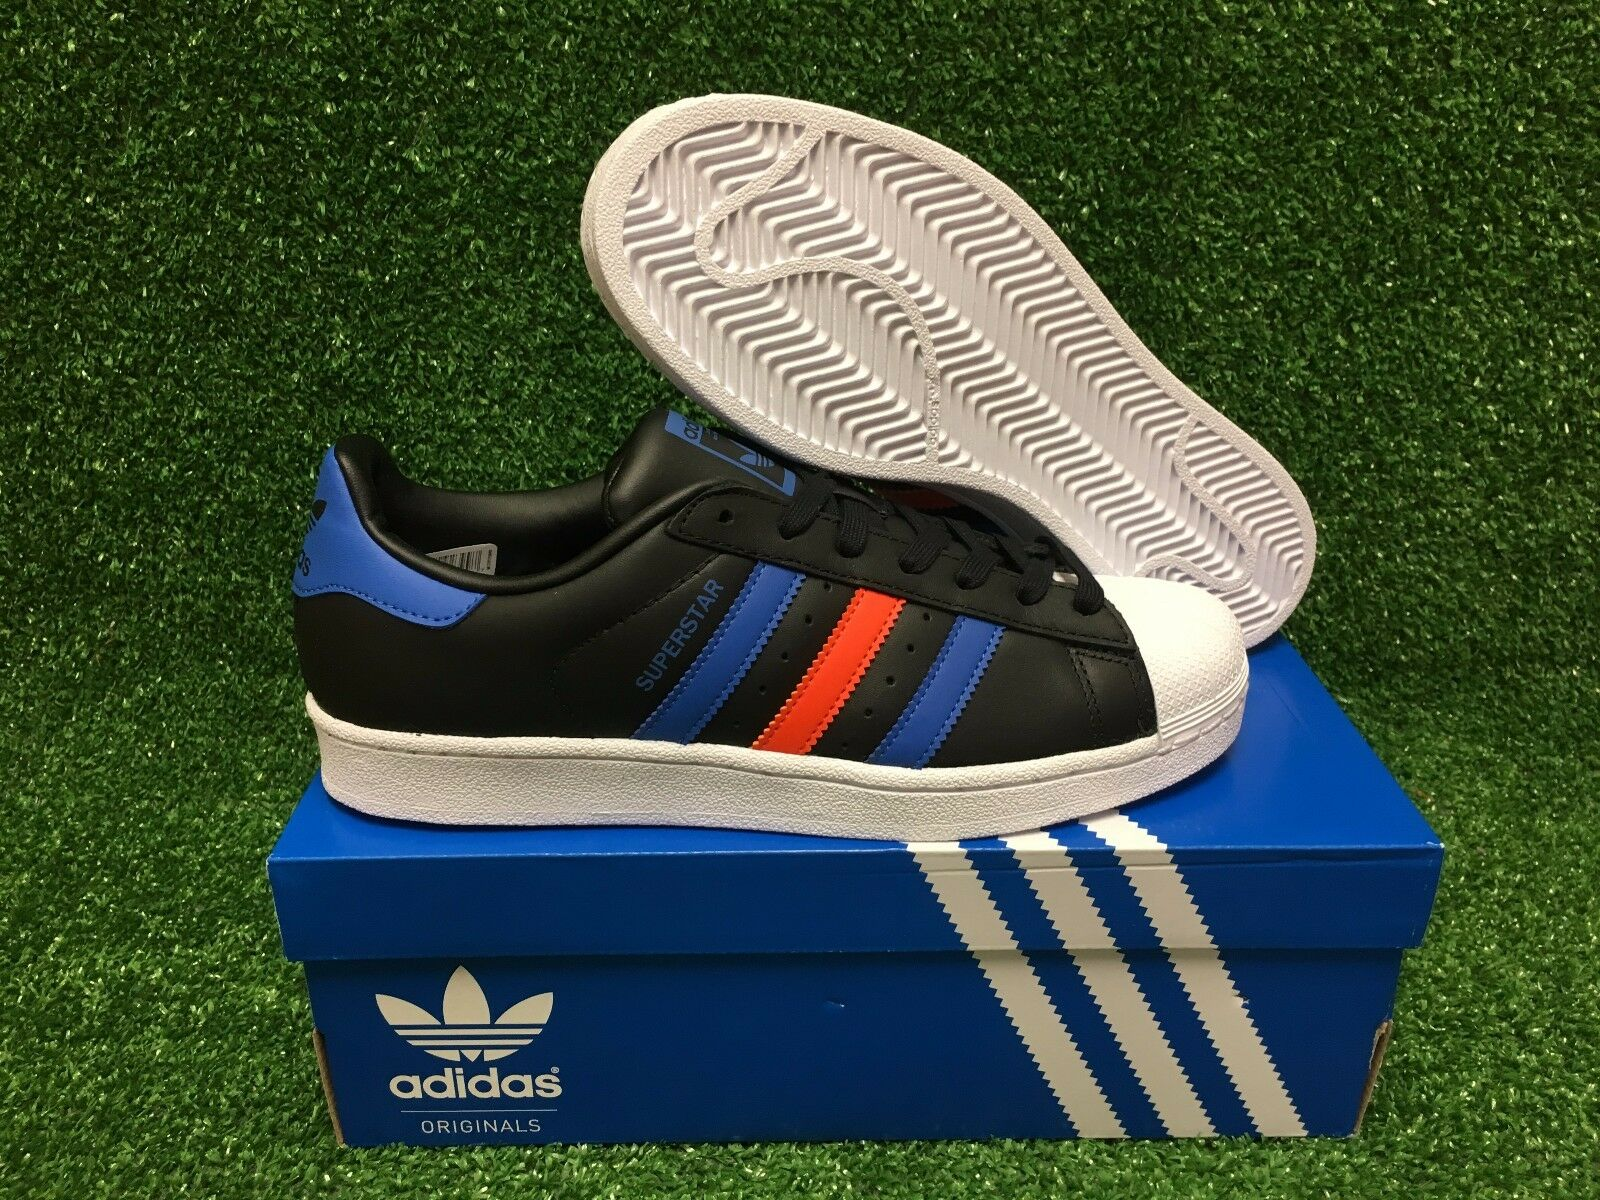 NEW ADIDAS ORIGINAL SUPERSTAR FOUNDATION Men's SHOES BLACK BLUE ORANGE BB2245